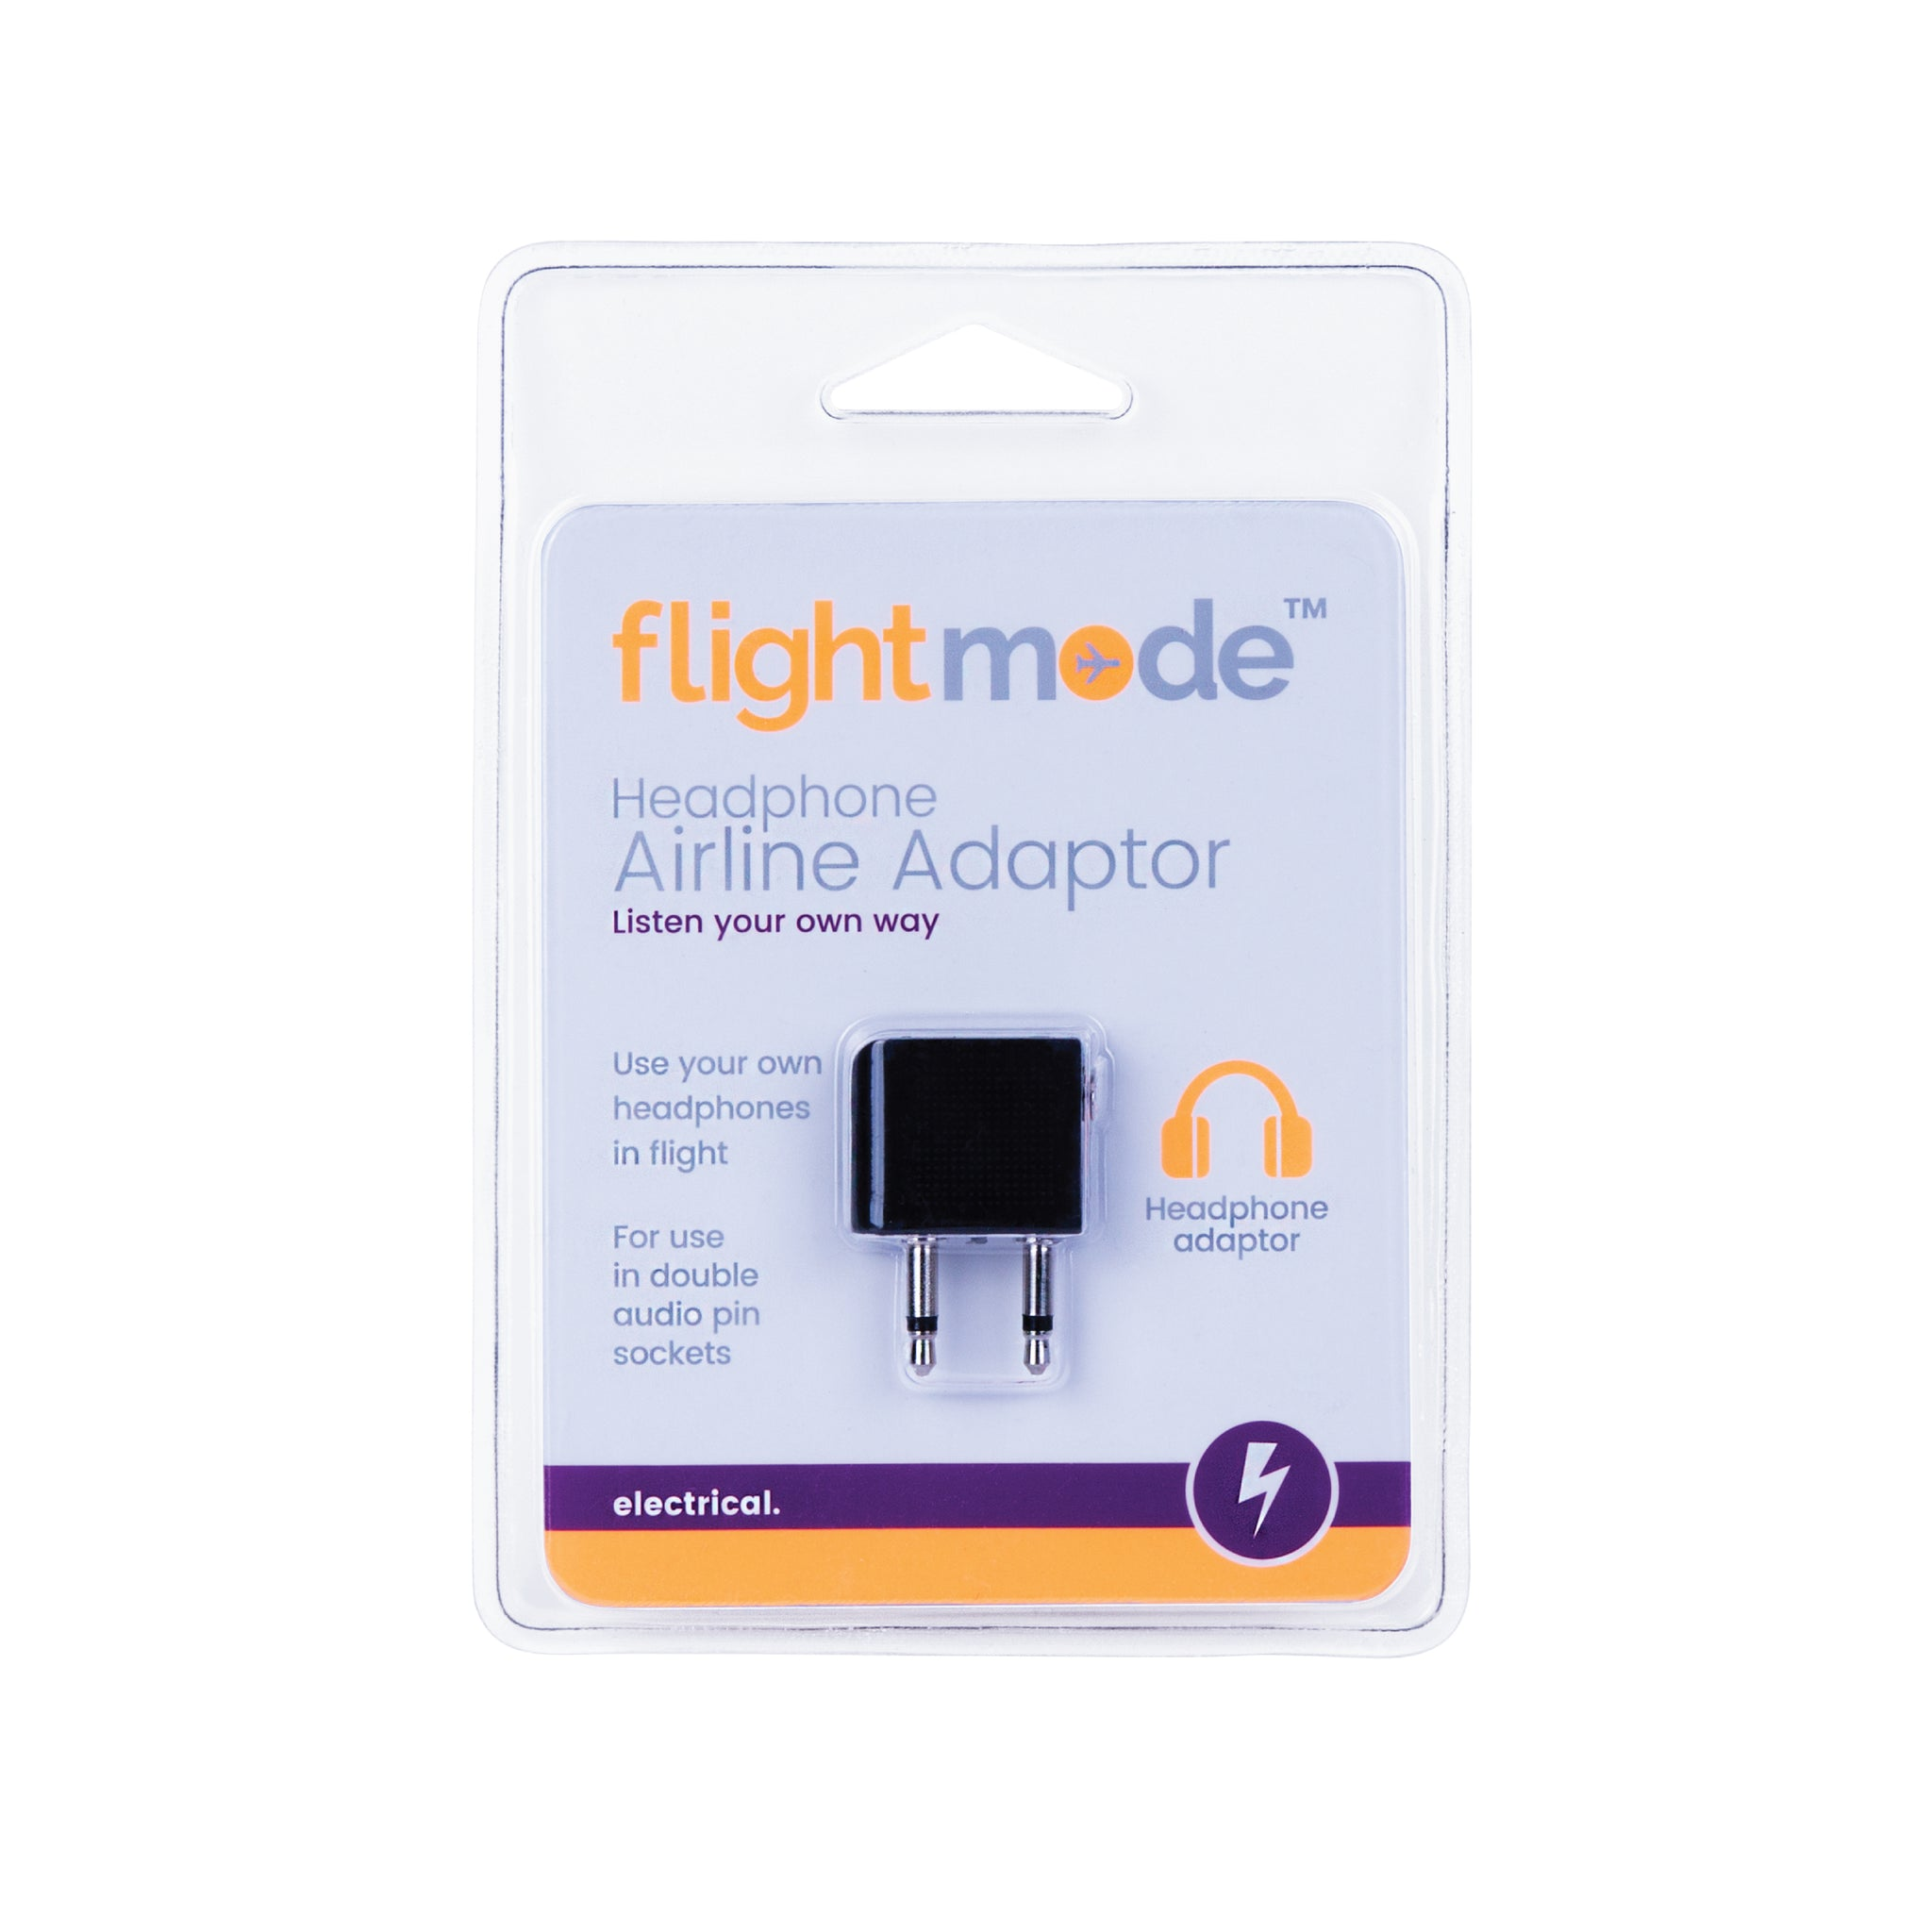 Flightmode Airline Adaptor - This adaptor allows you to use your single 3.5mm pin headphones in double pin audio sockets commonly found on many airlines.